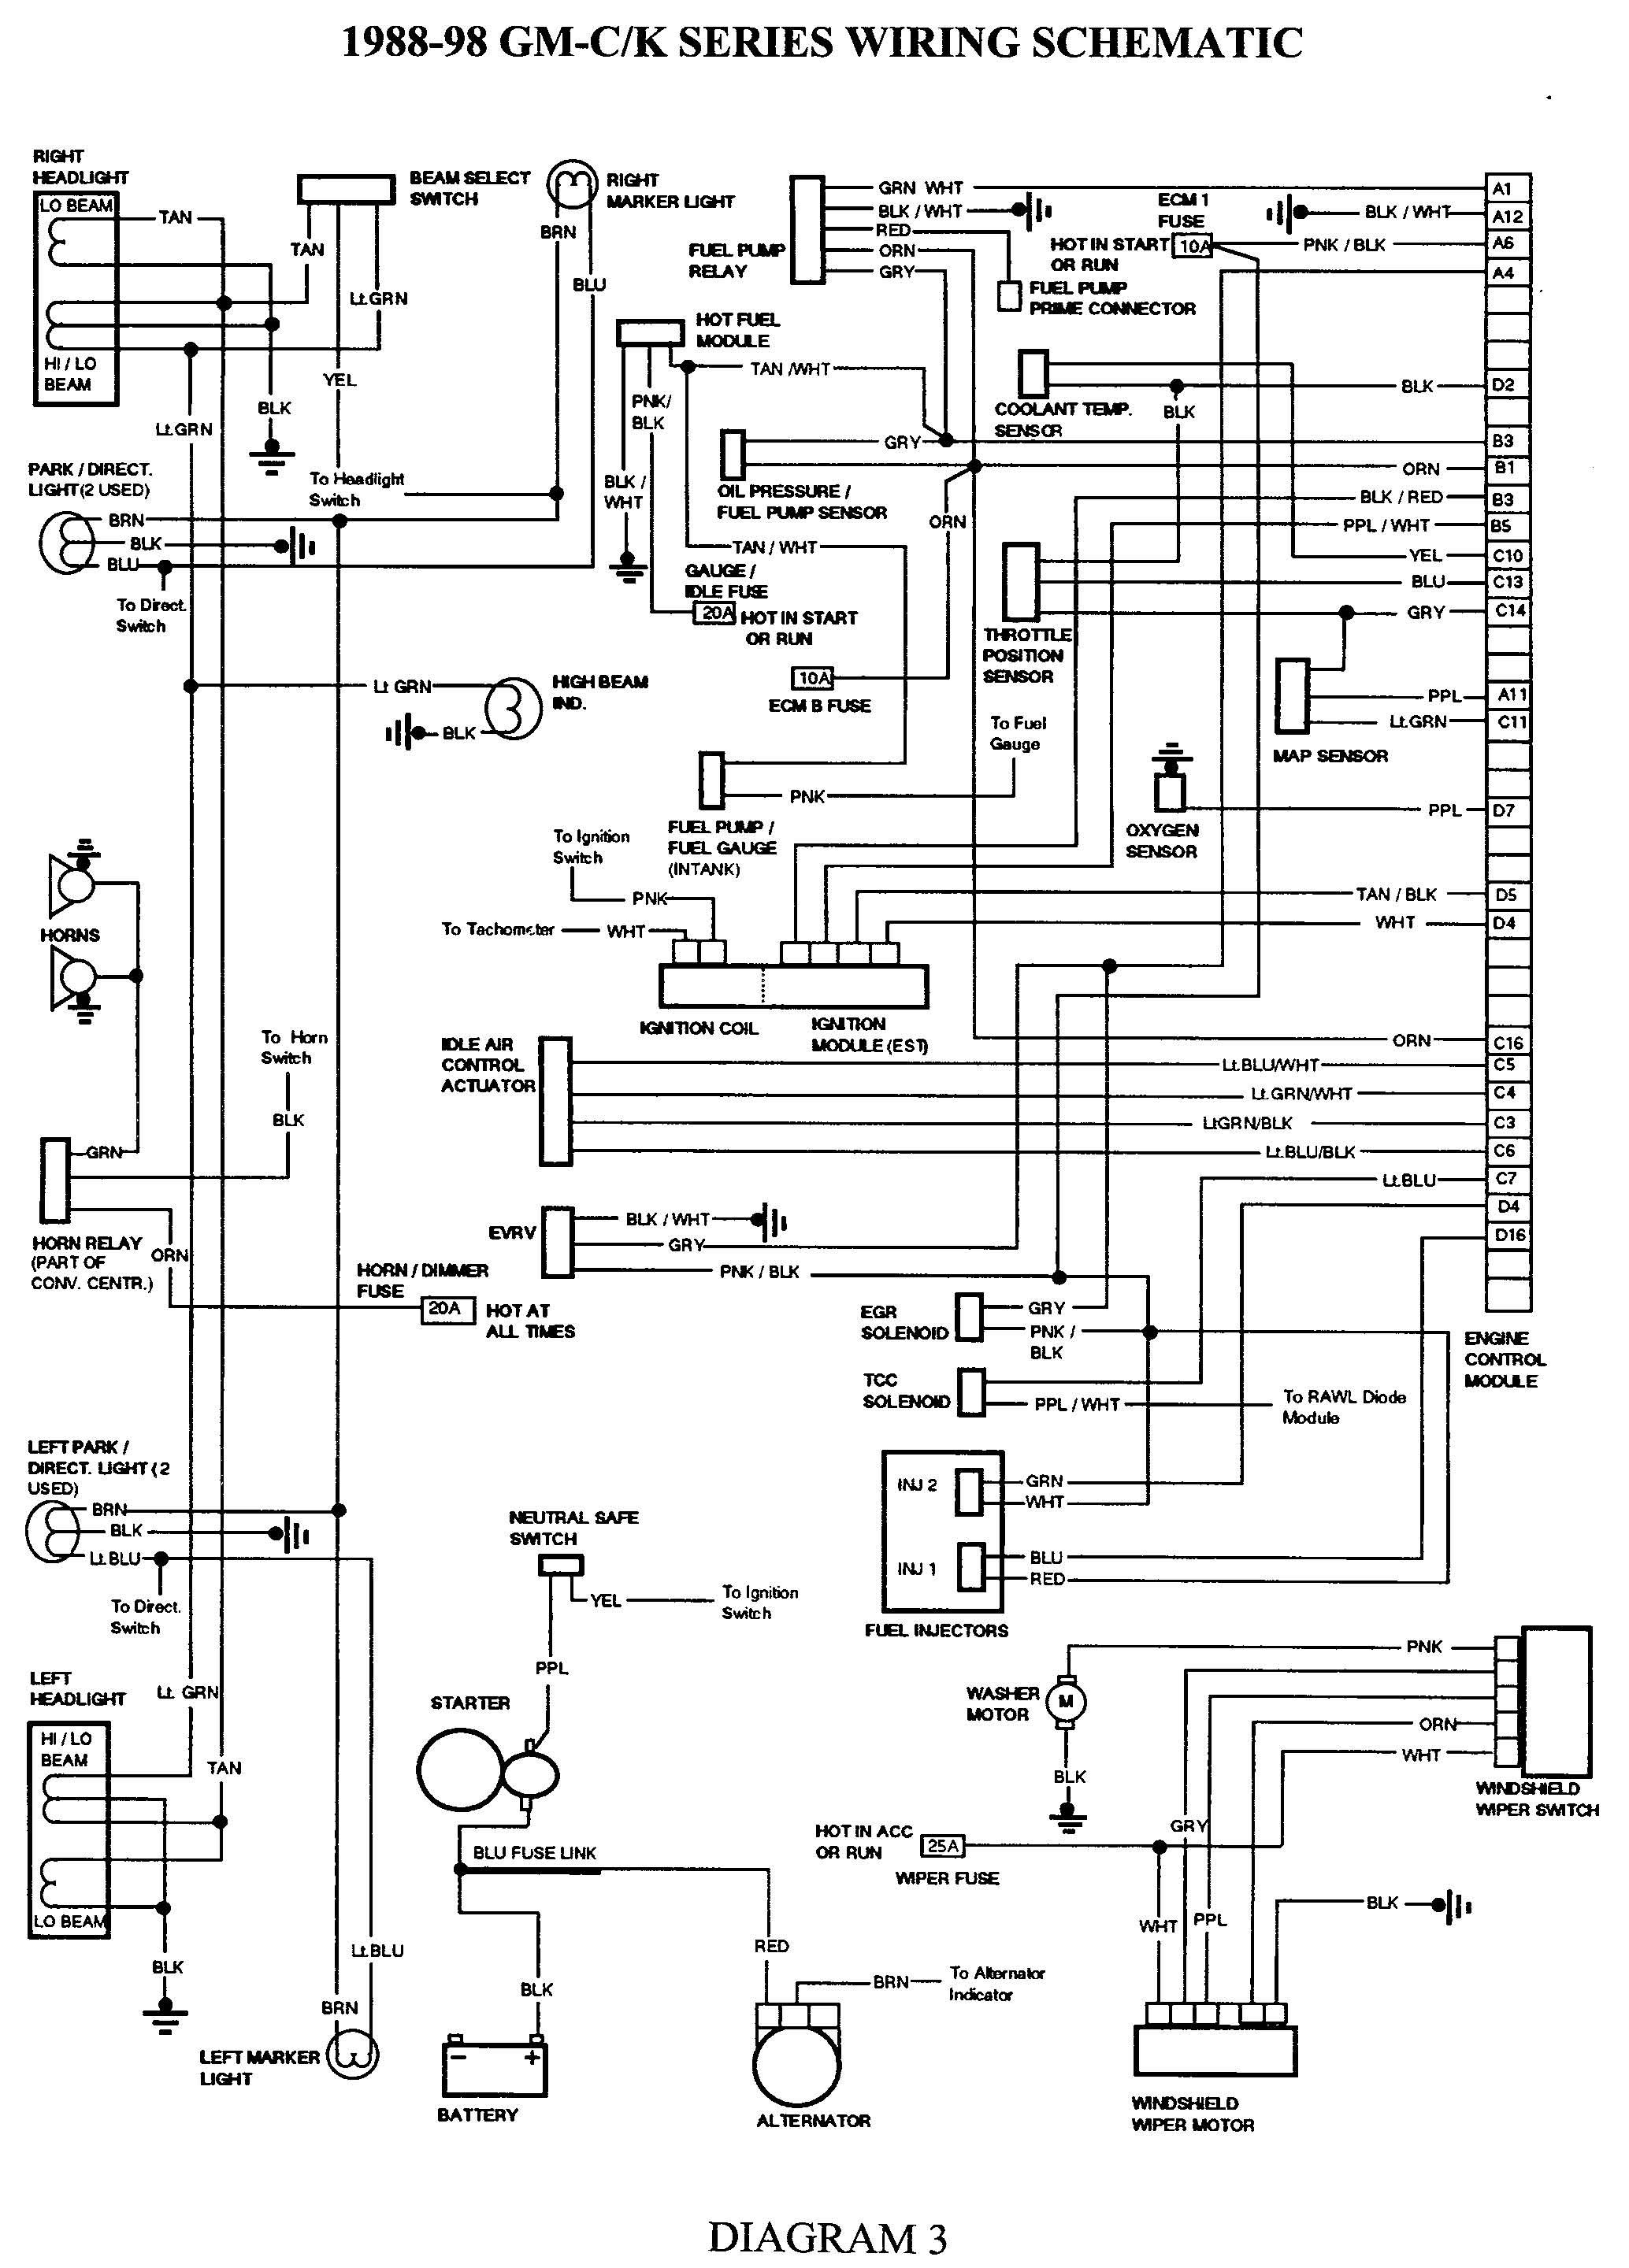 wiring diagram 1988 oldsmobile 88 wiring diagram mega 97 olds 88 wiring diagram [ 2068 x 2880 Pixel ]